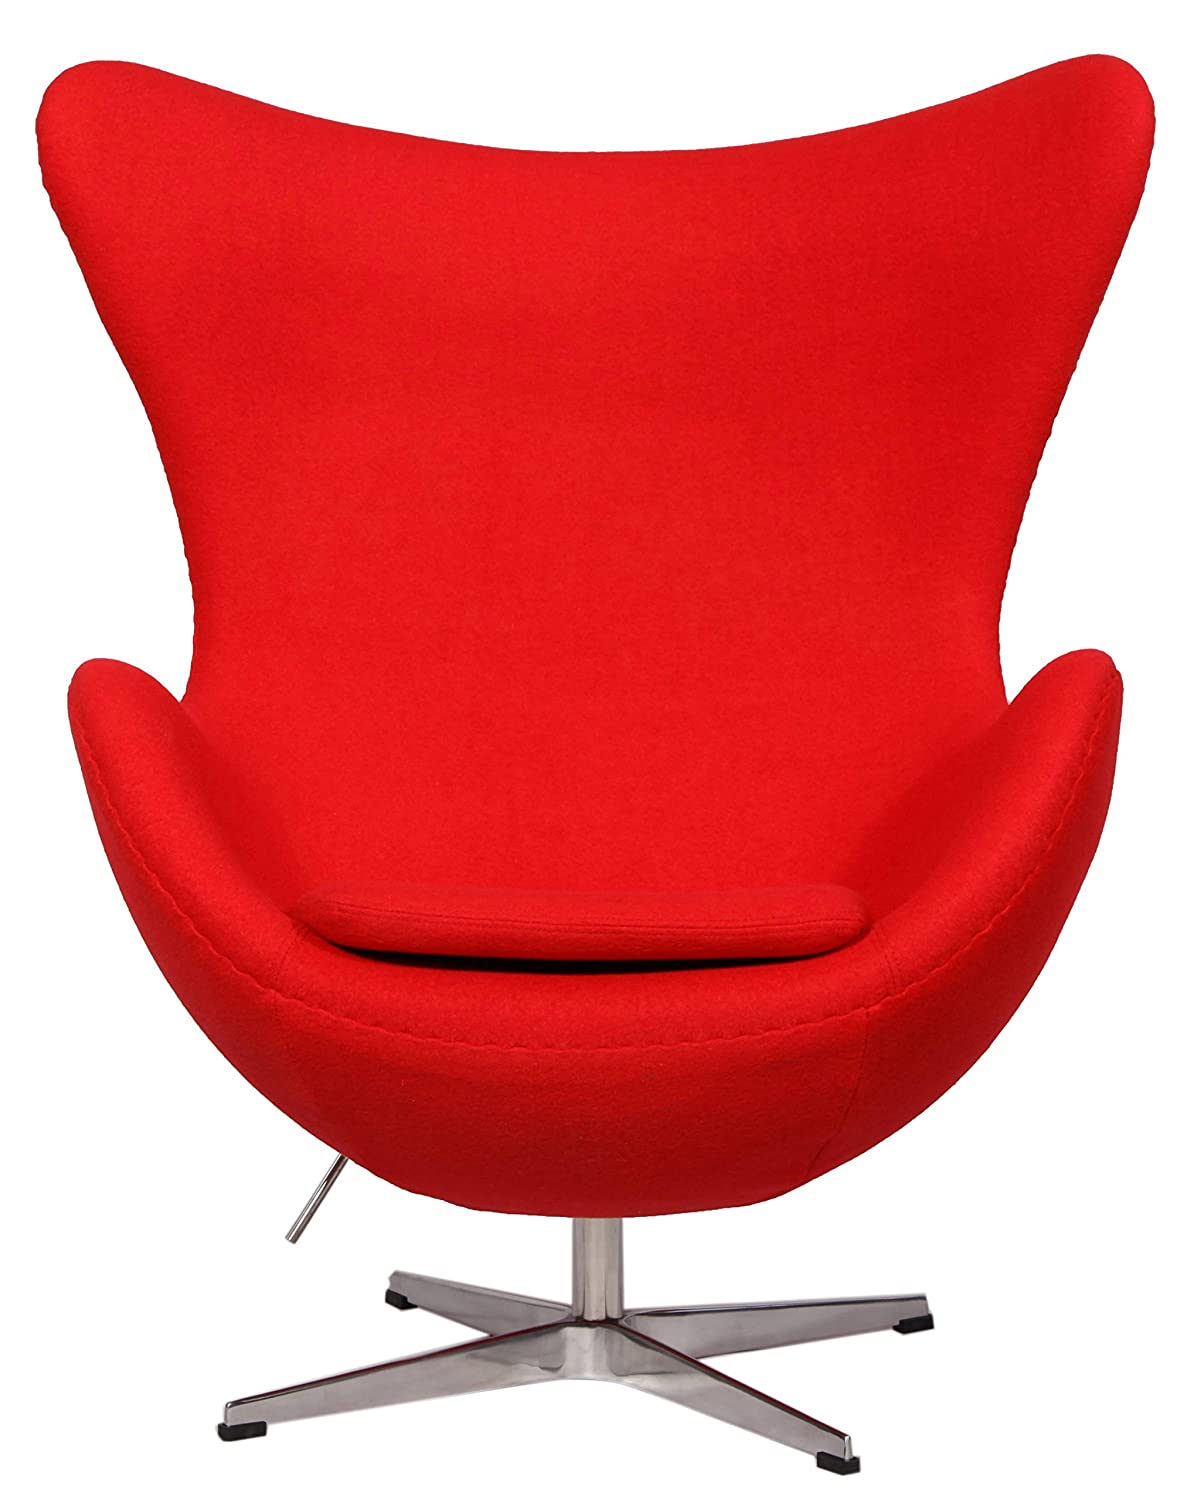 Amazon.com: MLF Arne Jacobsen Egg Chair (5 Colors). Premium Cashmere Wool U0026  Hand Sewing. Adjustable Tilt. High Density Foam. 360176; Swivel, 4 Star  Satin ...